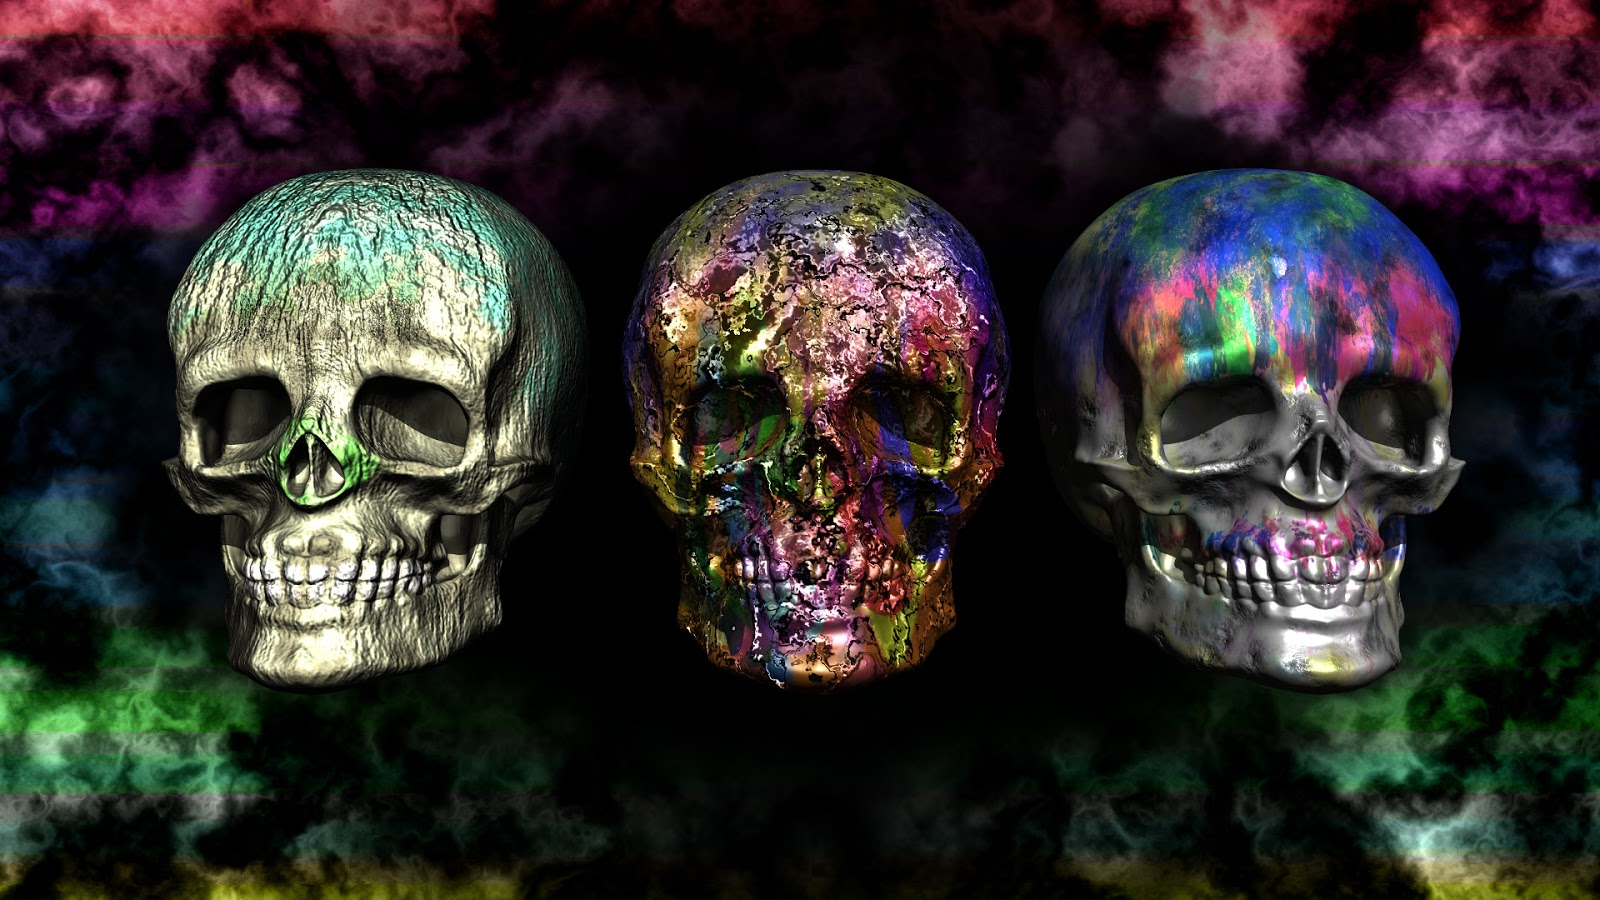 Sfondi Per Desktop Teschi Wallpapers Skull Digitalmatt Blog